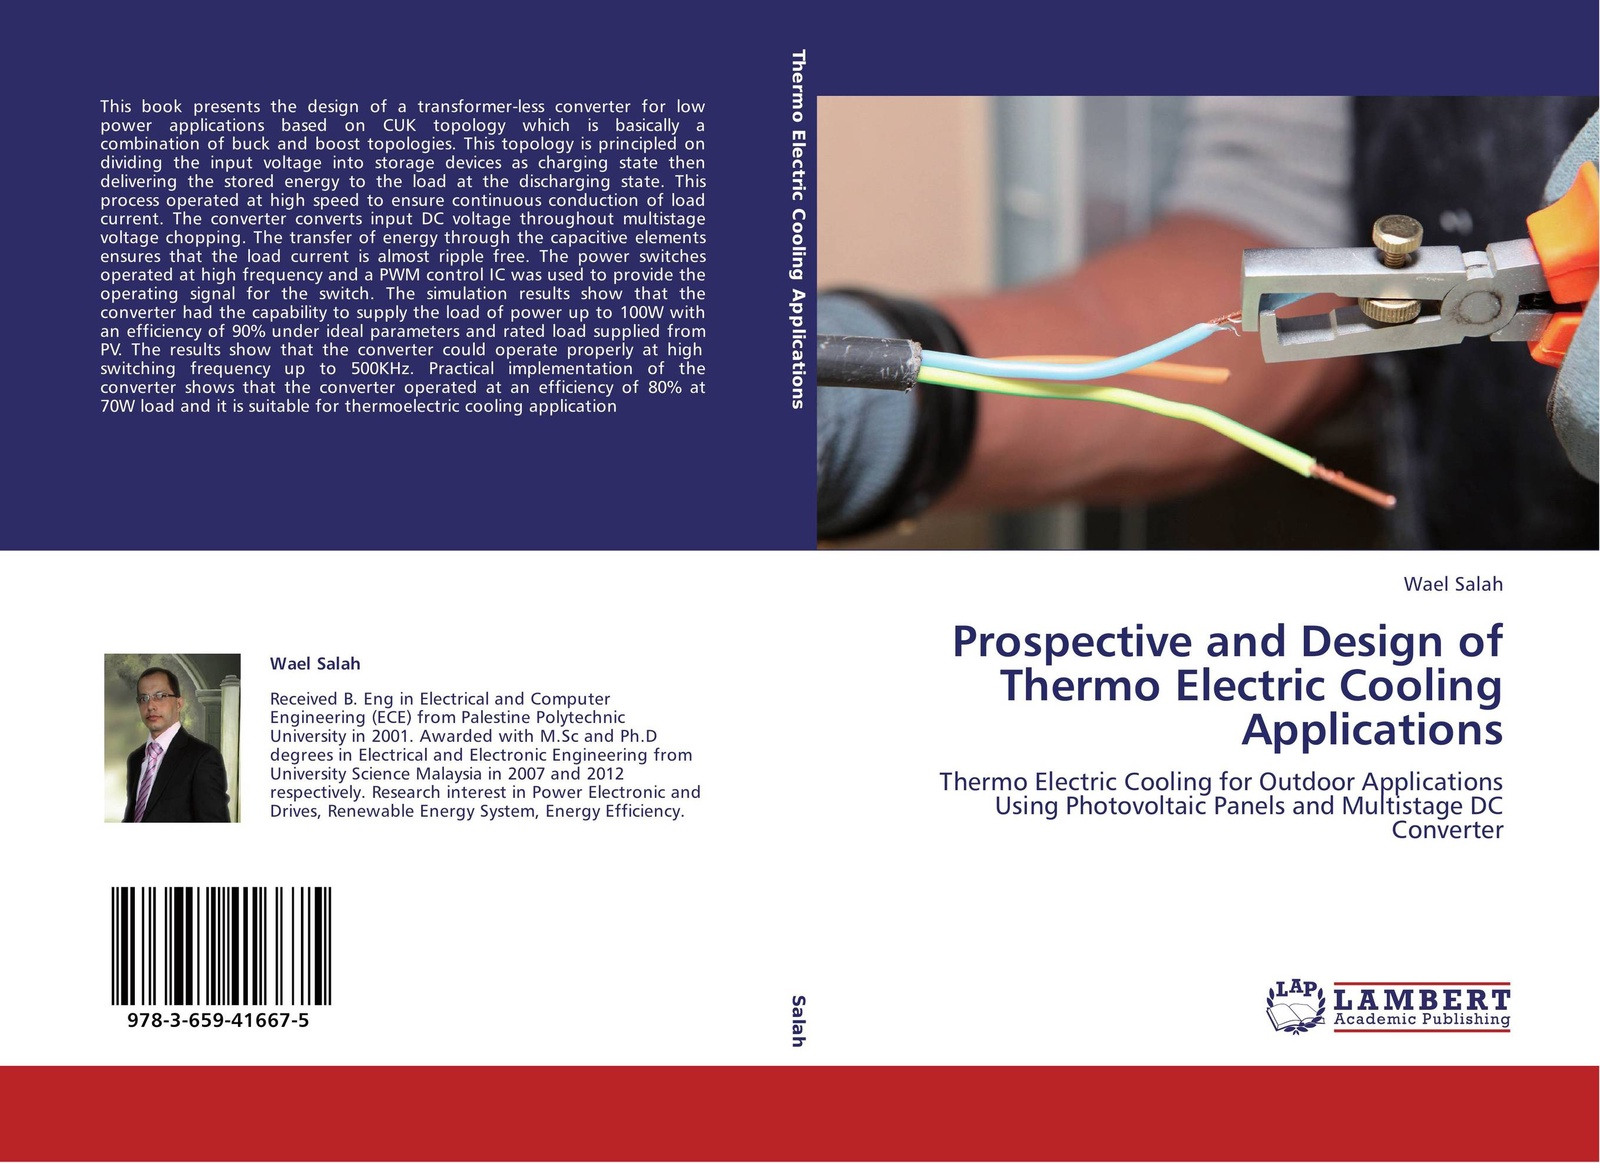 Wael Salah Prospective and Design of Thermo Electric Cooling Applications 100w 2 way ac travel voltage adapter converter